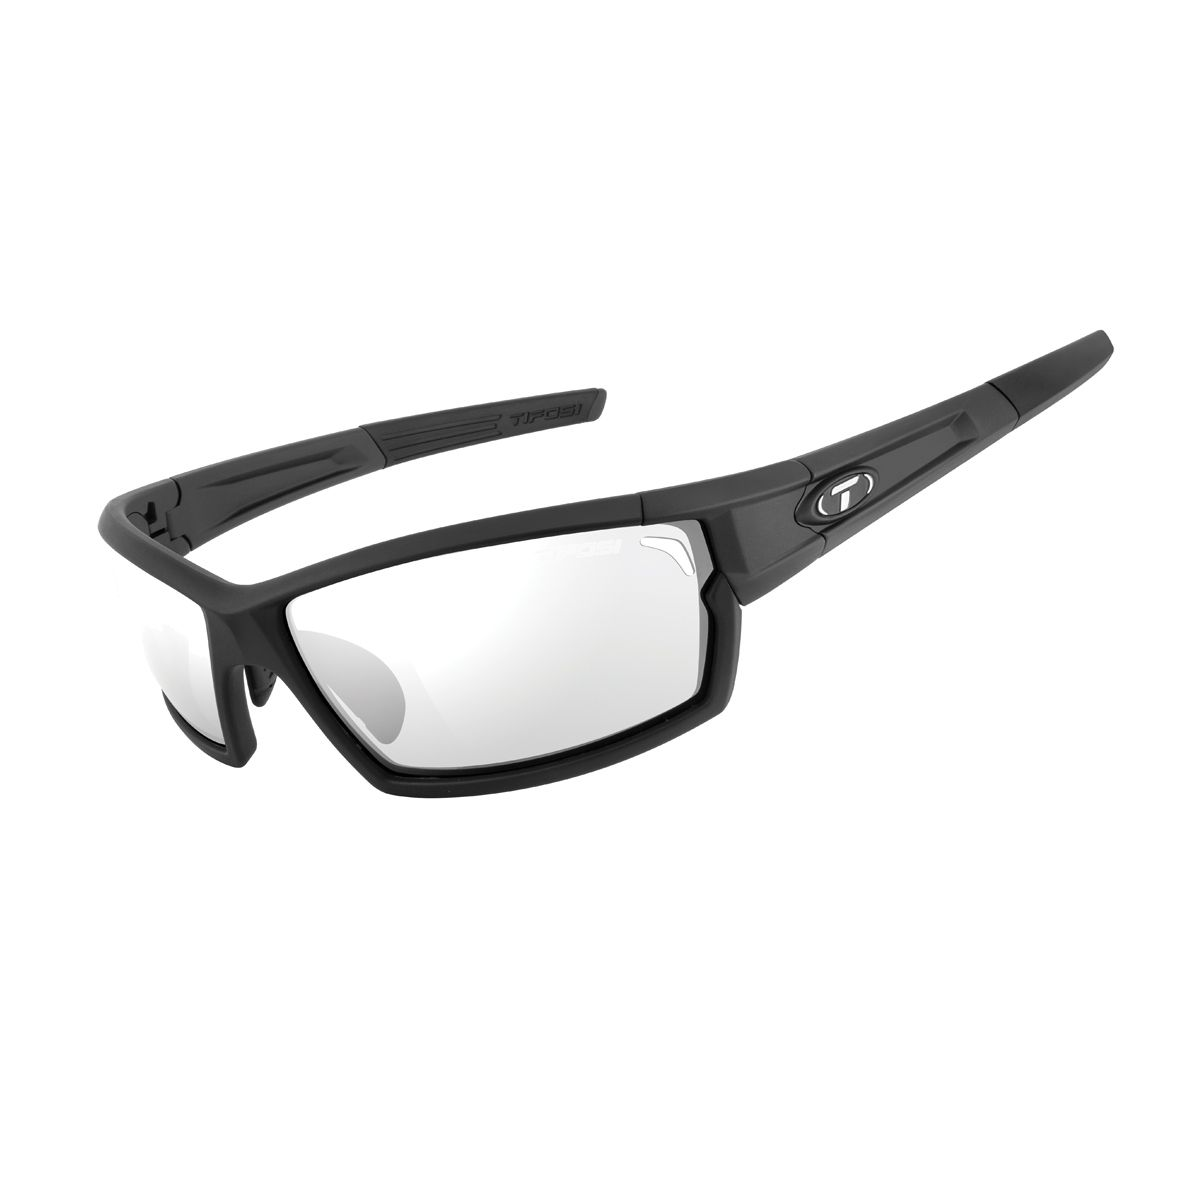 e9339517206 Tifosi Camrock with Full Frame Fototec Sunglasses with Interchangeable  Lenses - Eyewear - Cycle SuperStore